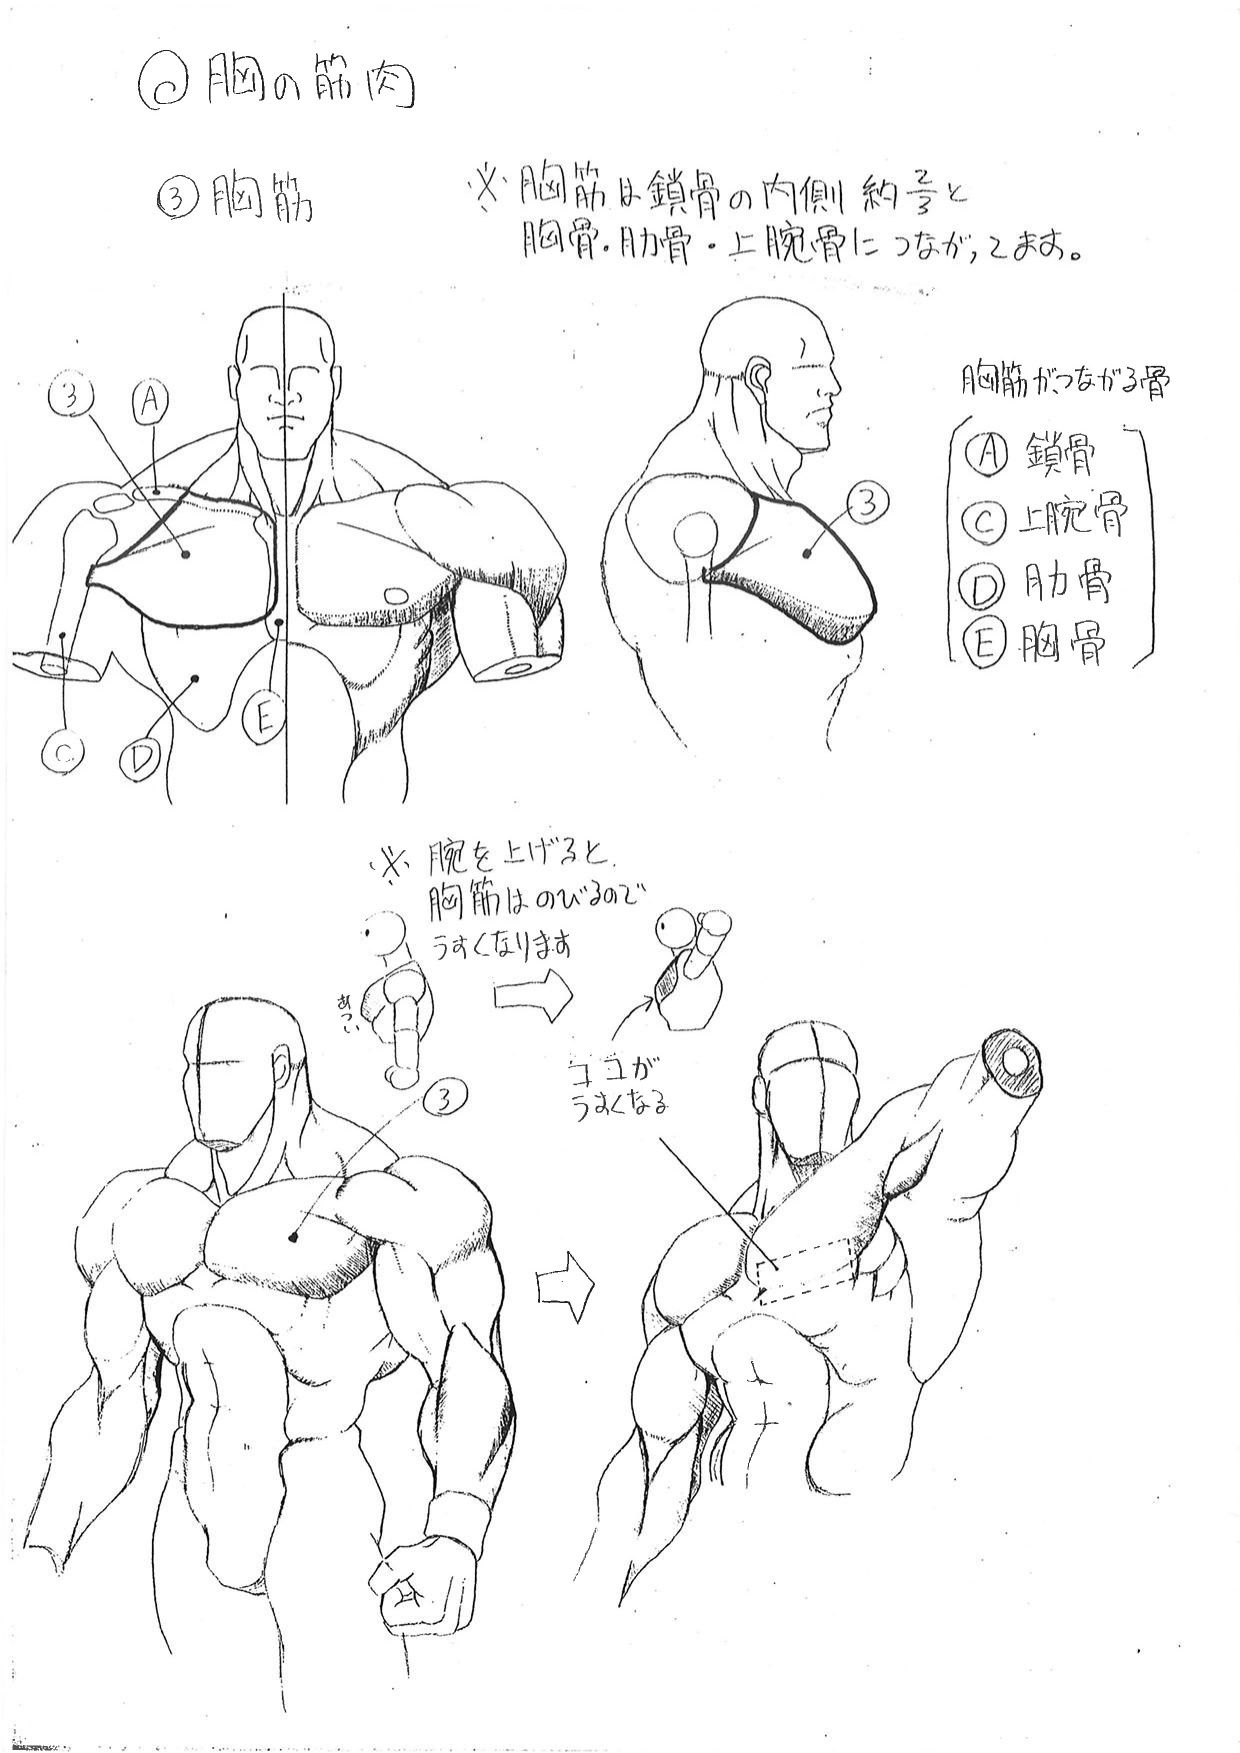 Capcom\'s Human Anatomical Reference For Artists | Learn Some Shit ...